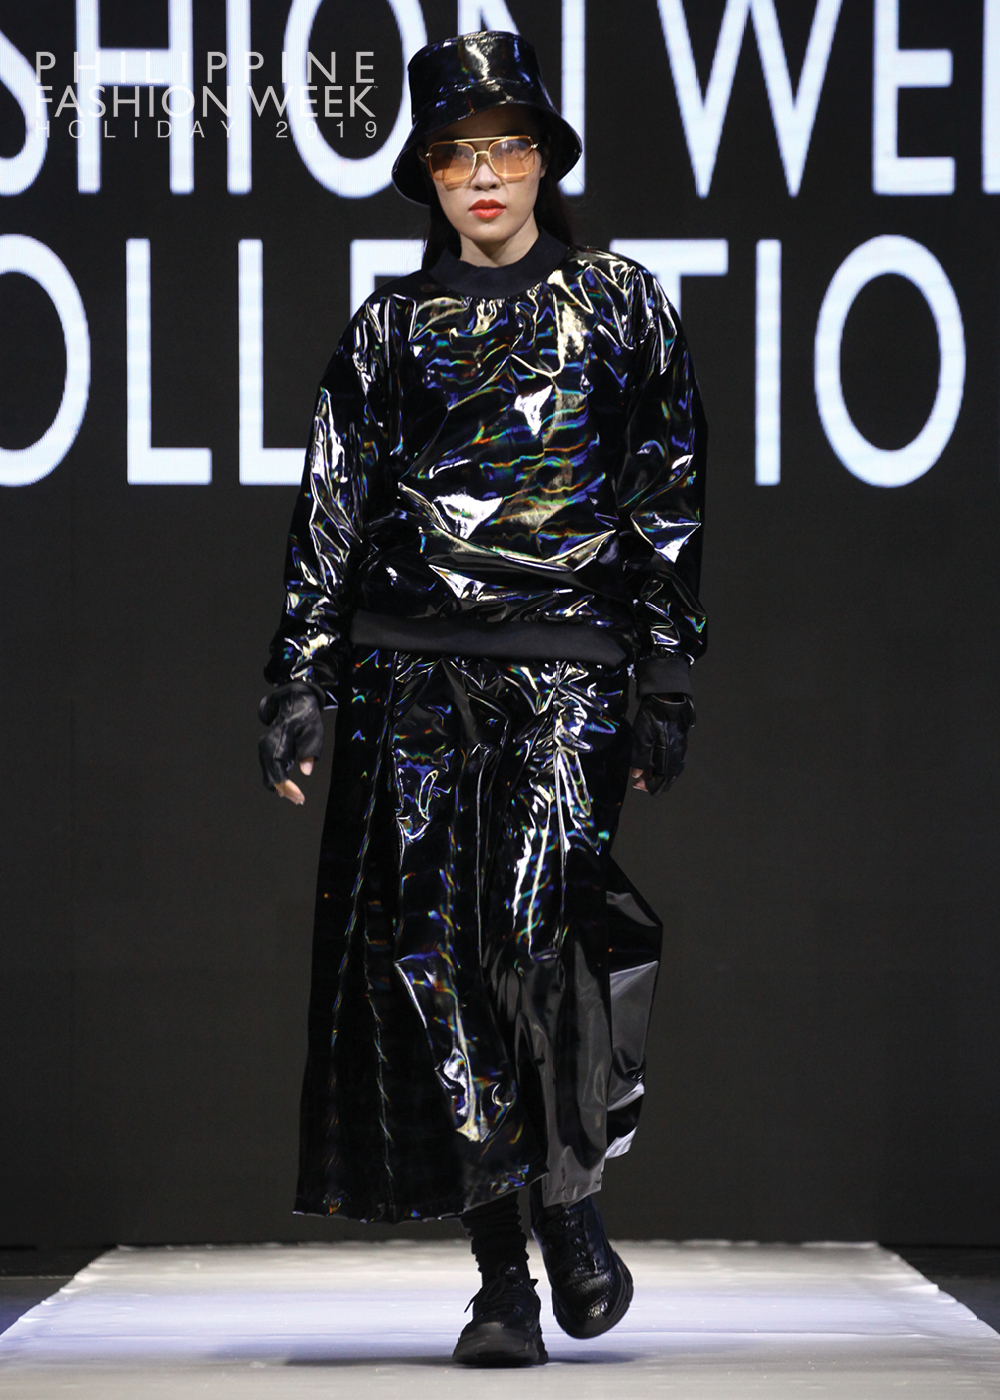 PhFW_collection show9.jpg